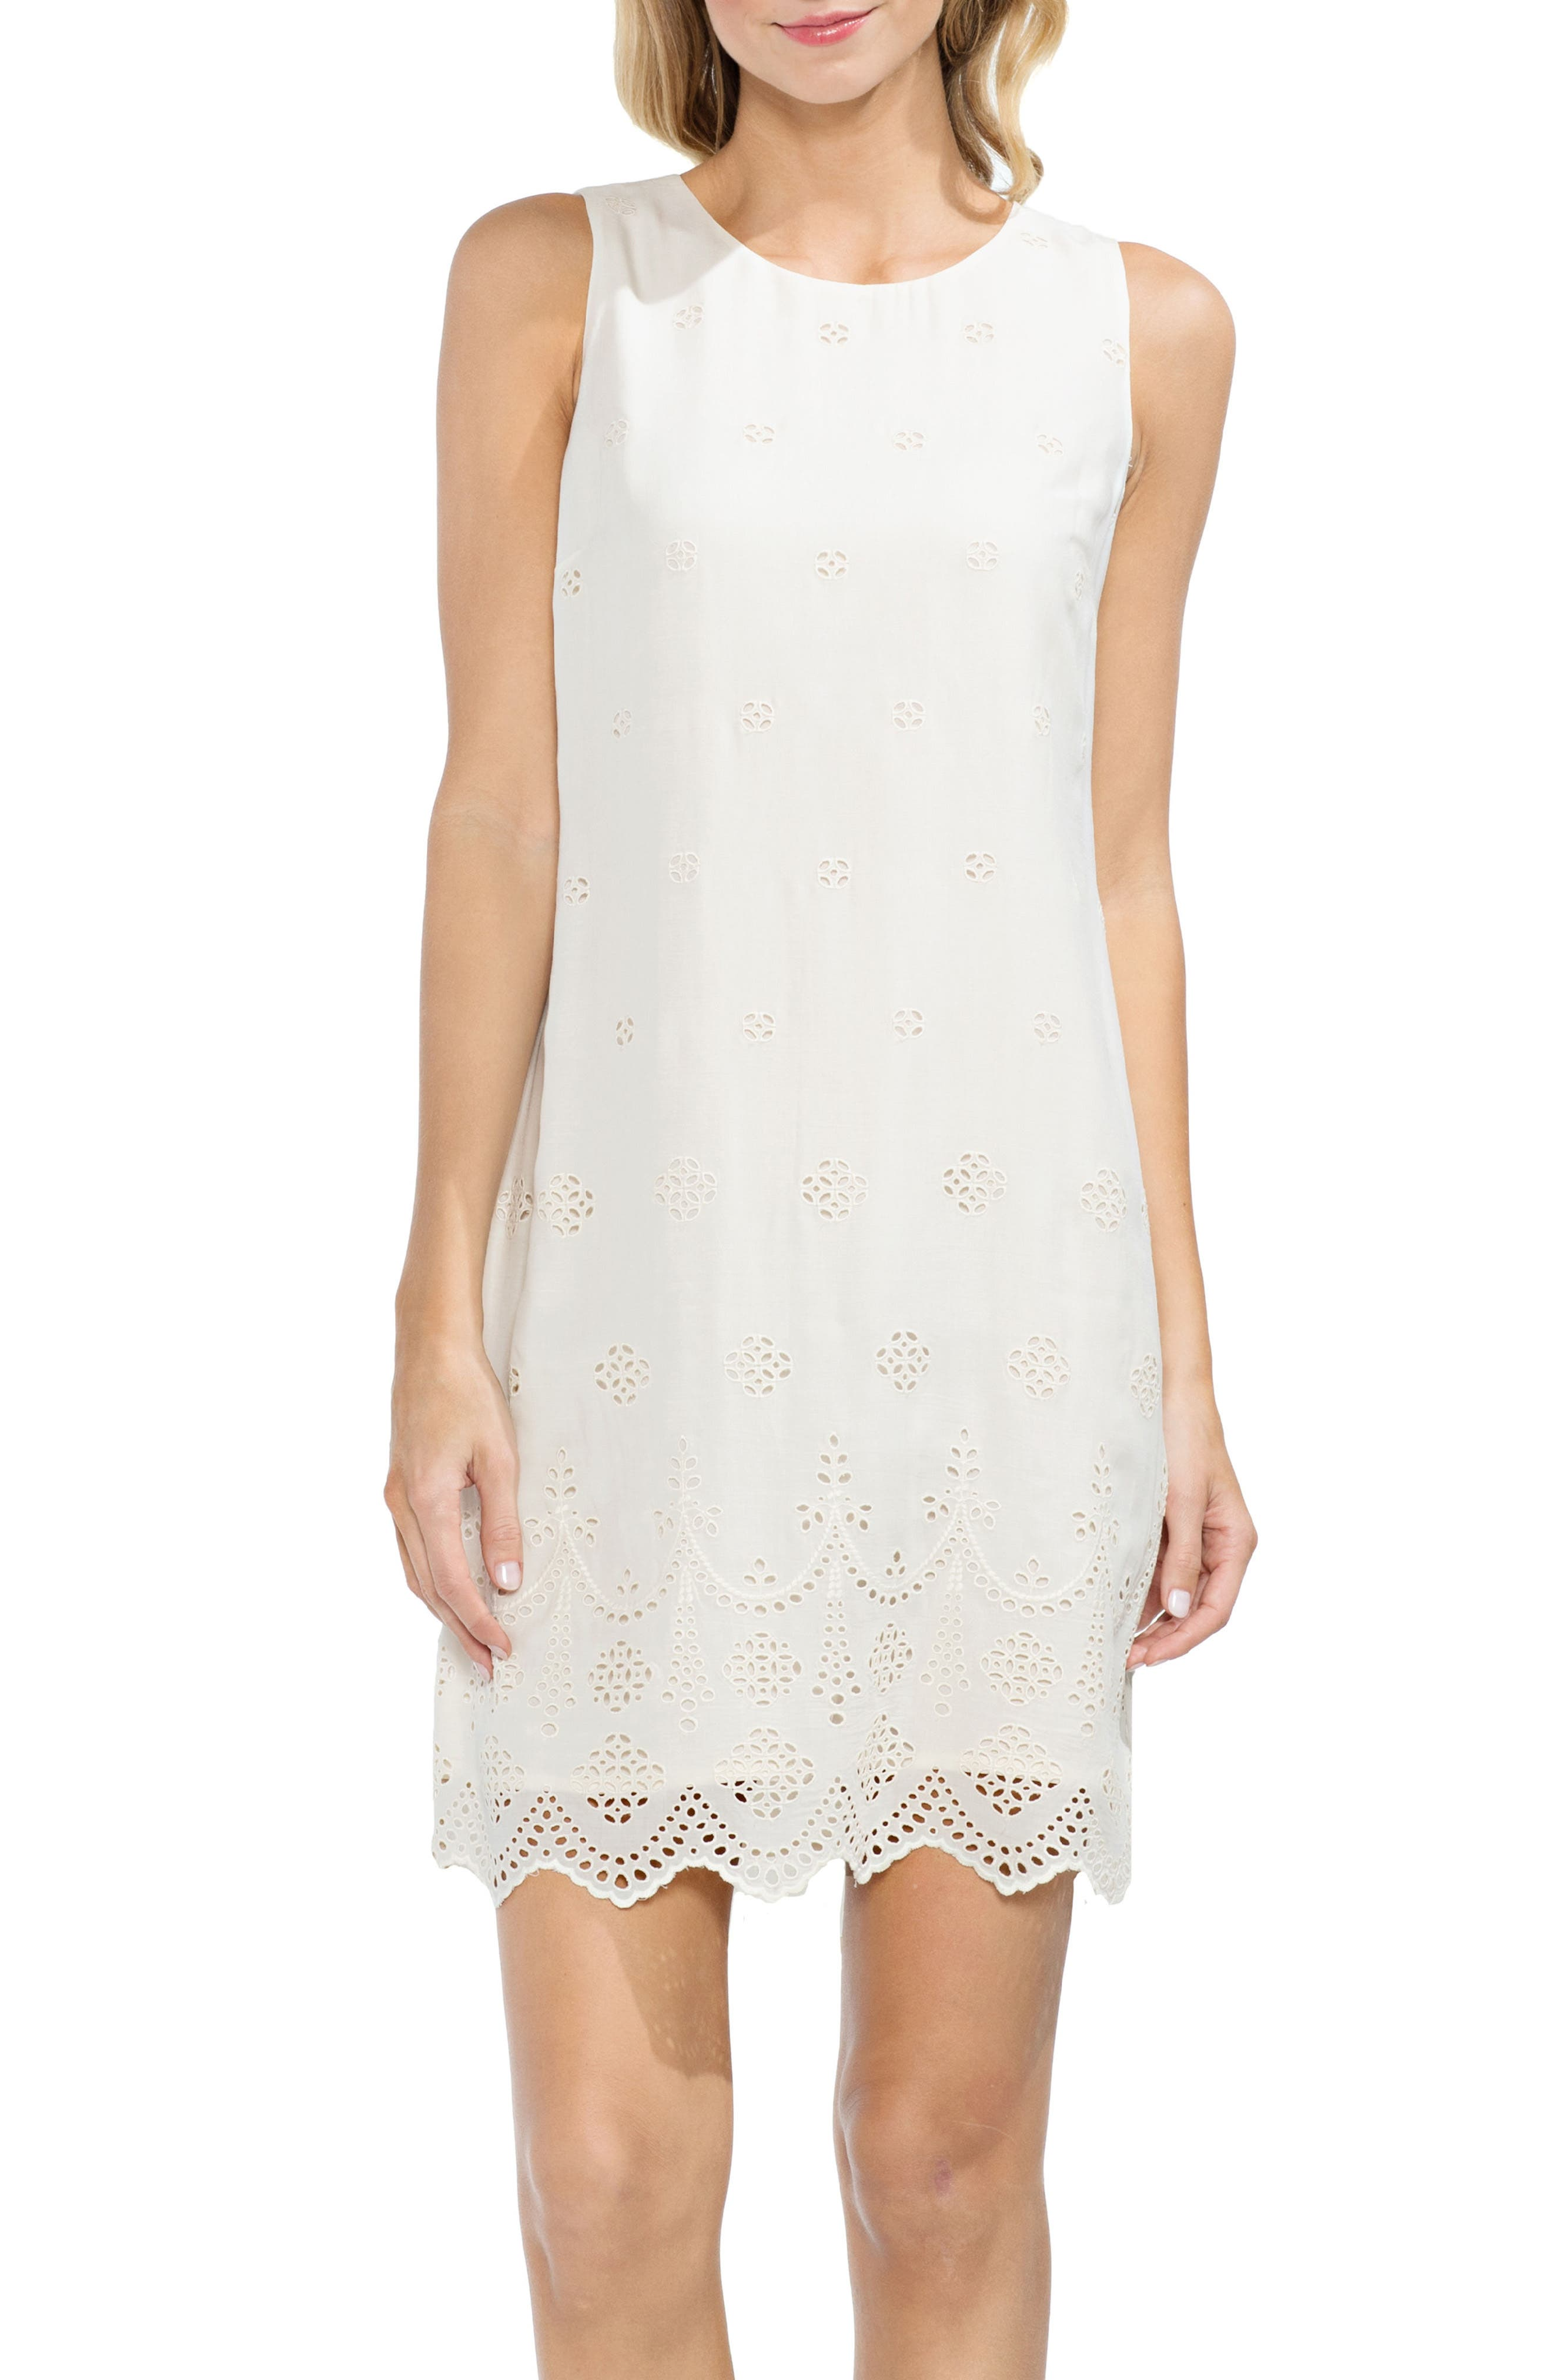 Vince Camuto Scalloped Eyelet Shift Dress